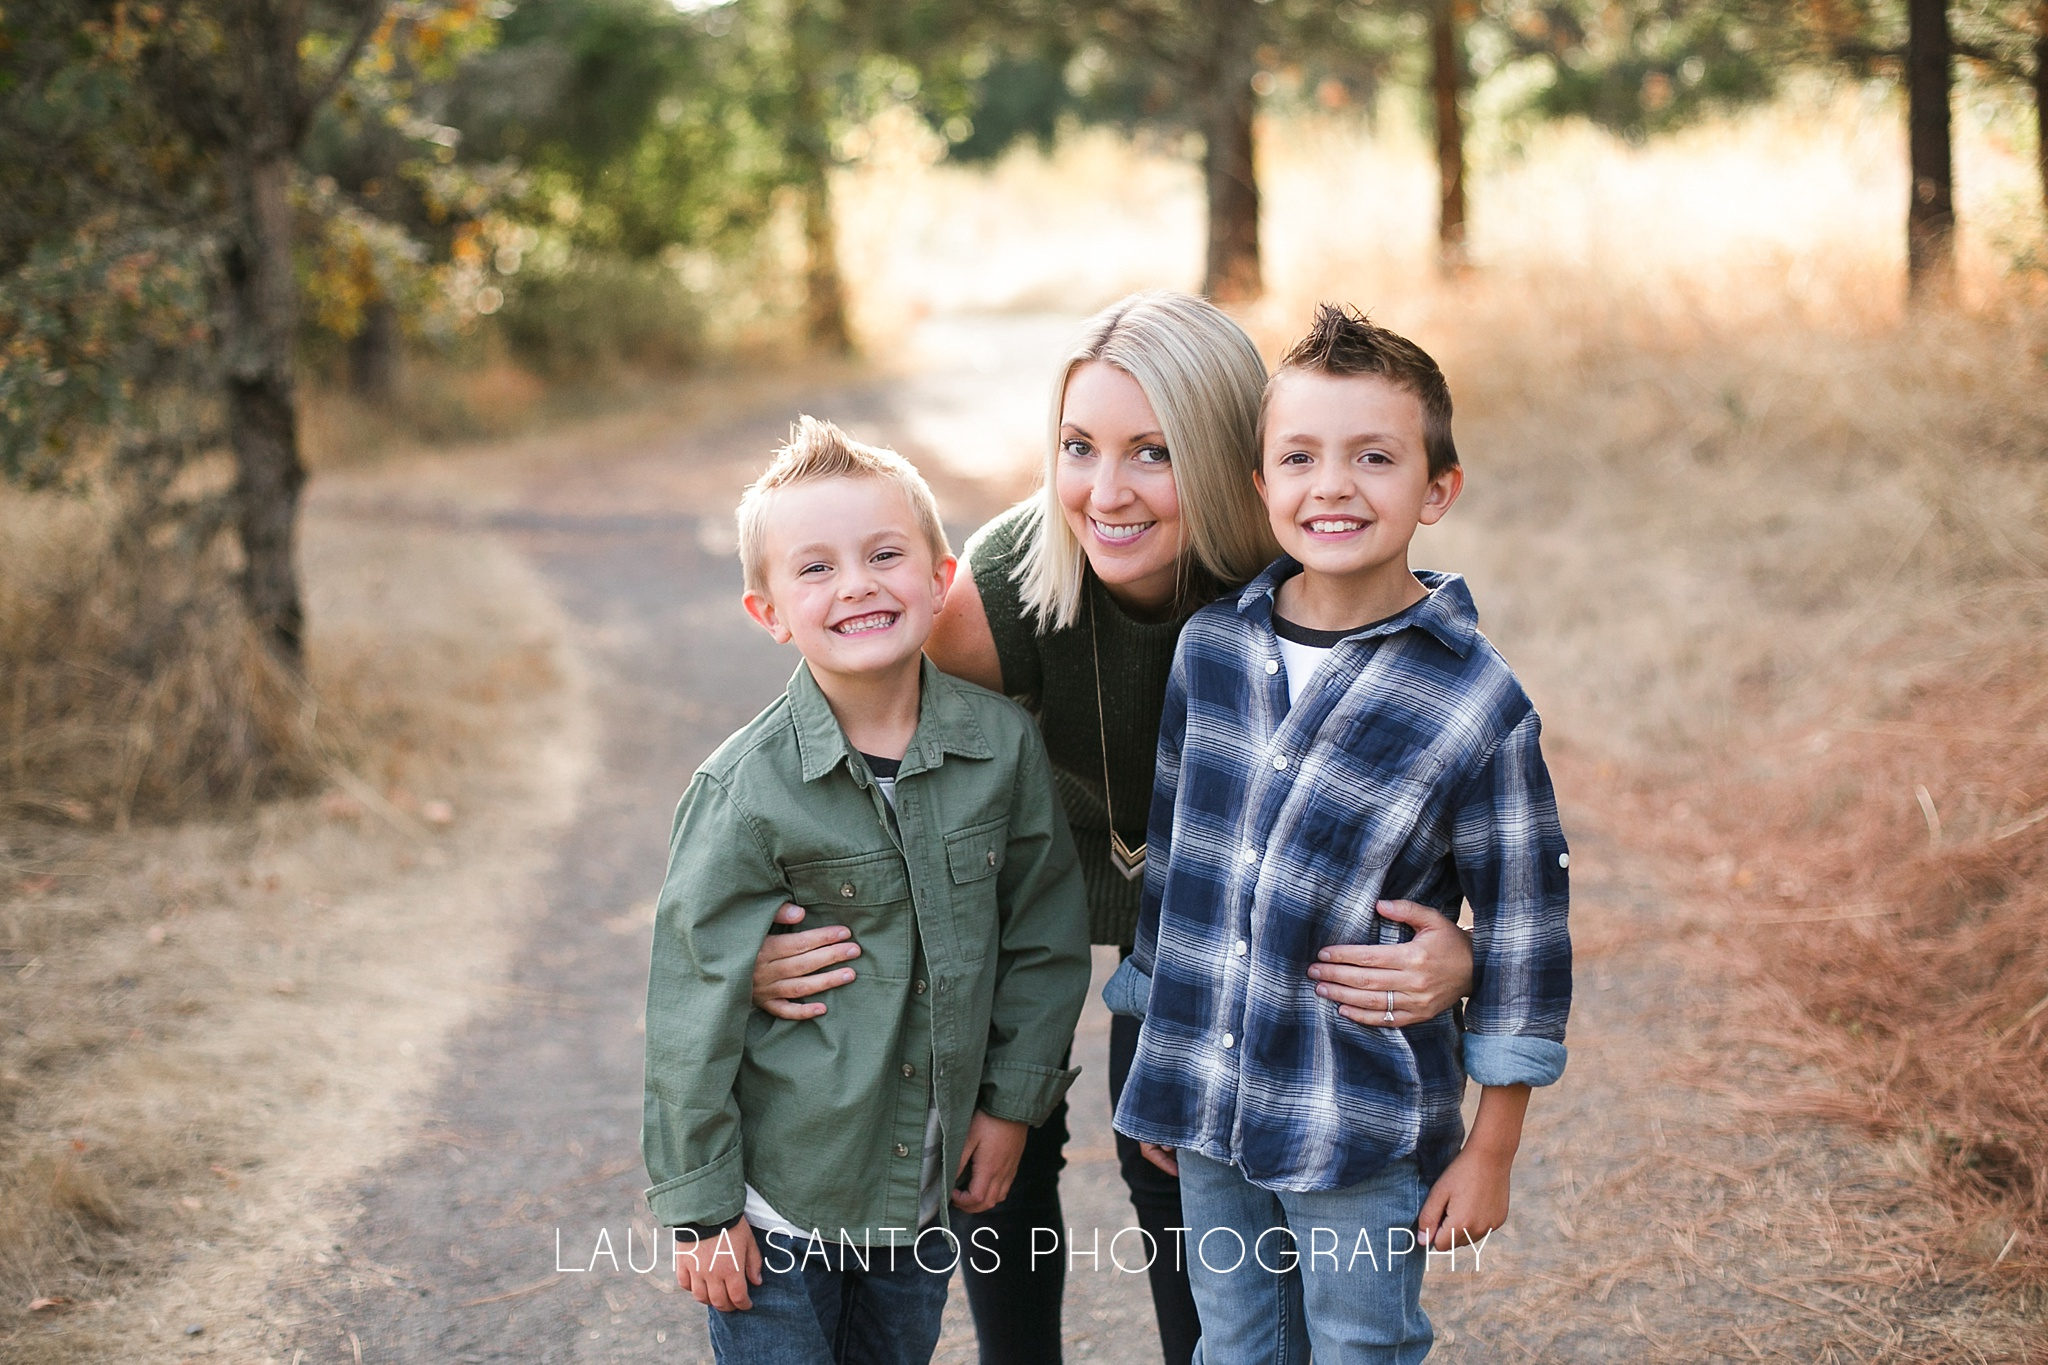 Laura Santos Photography Portland Oregon Family Photographer_0410.jpg